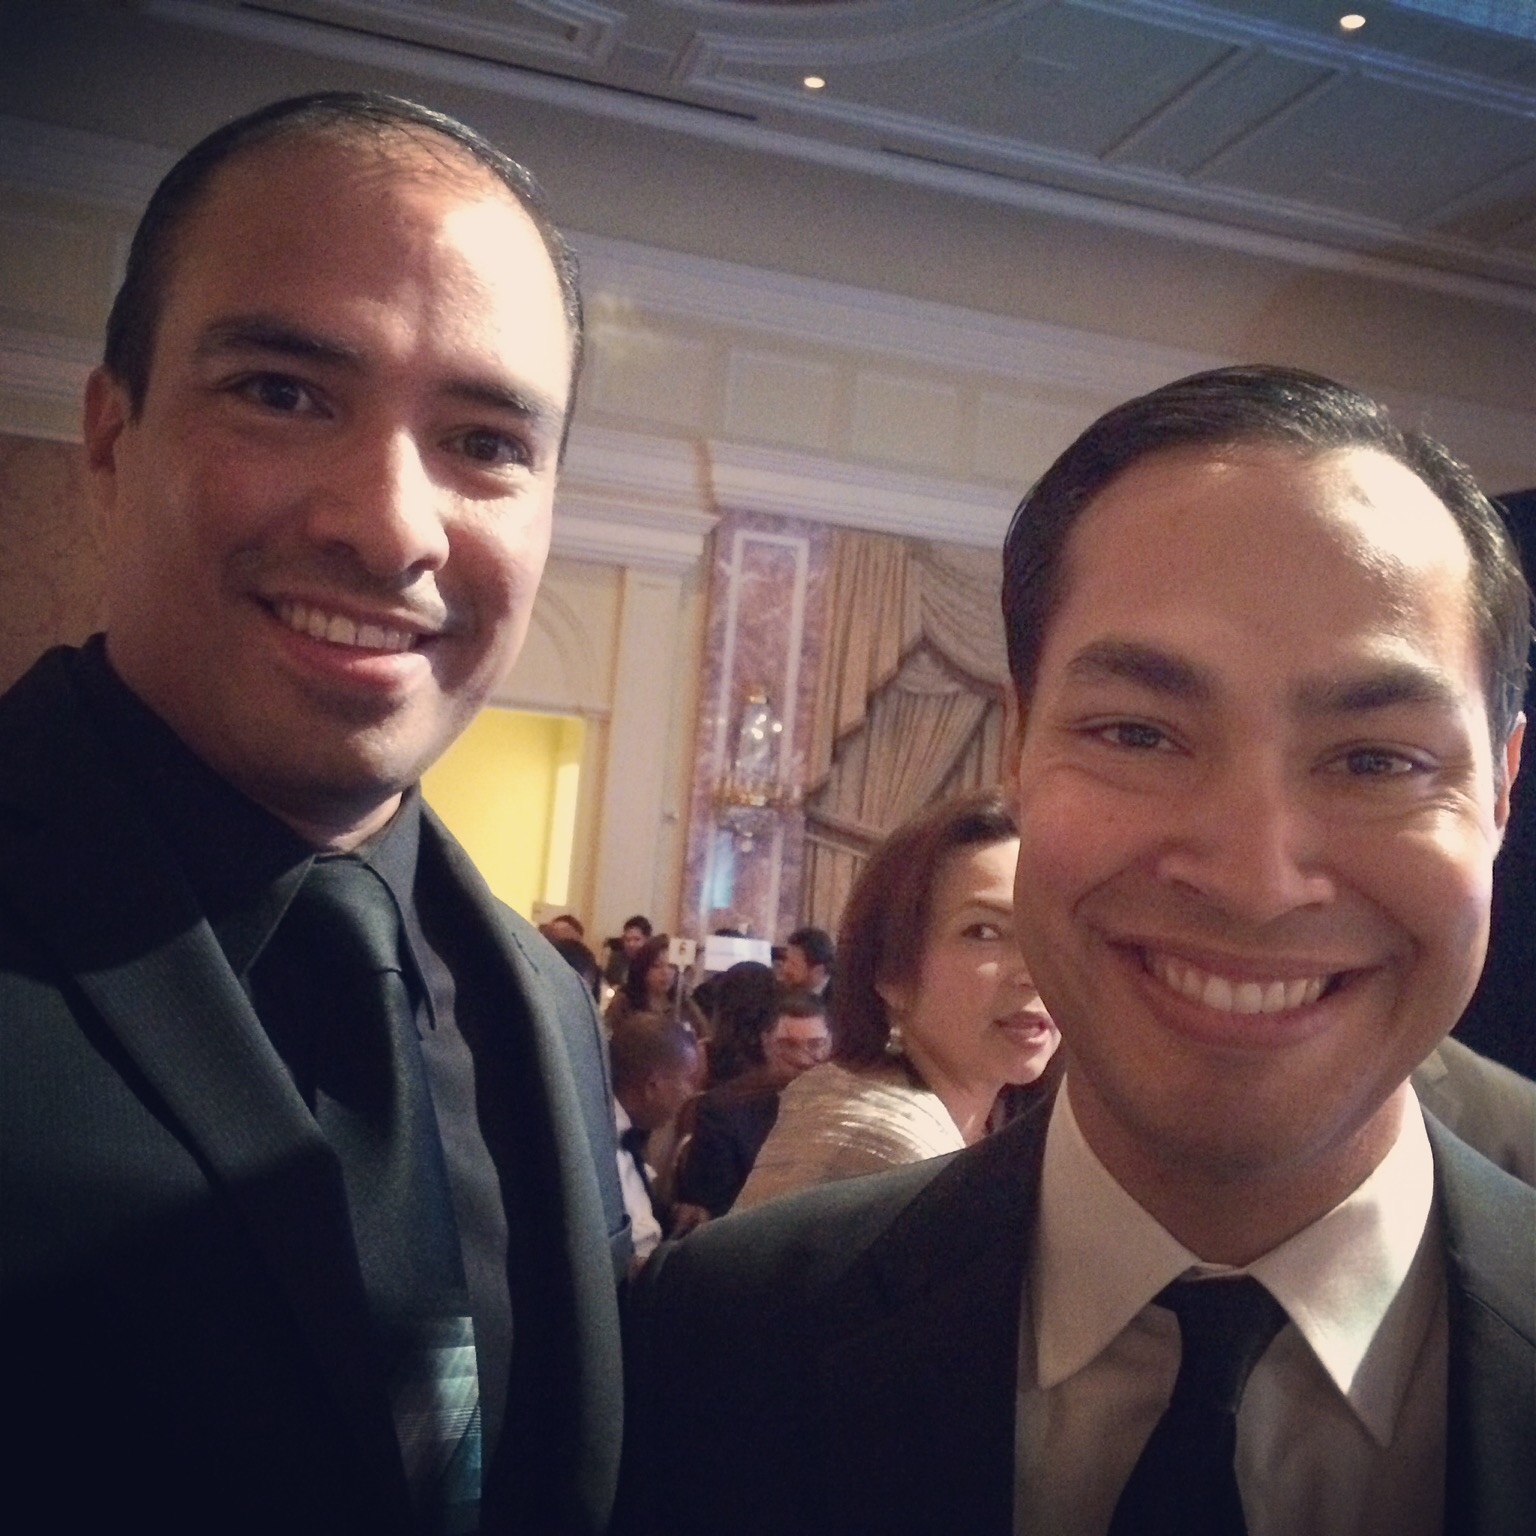 julian-castro-with-tayde